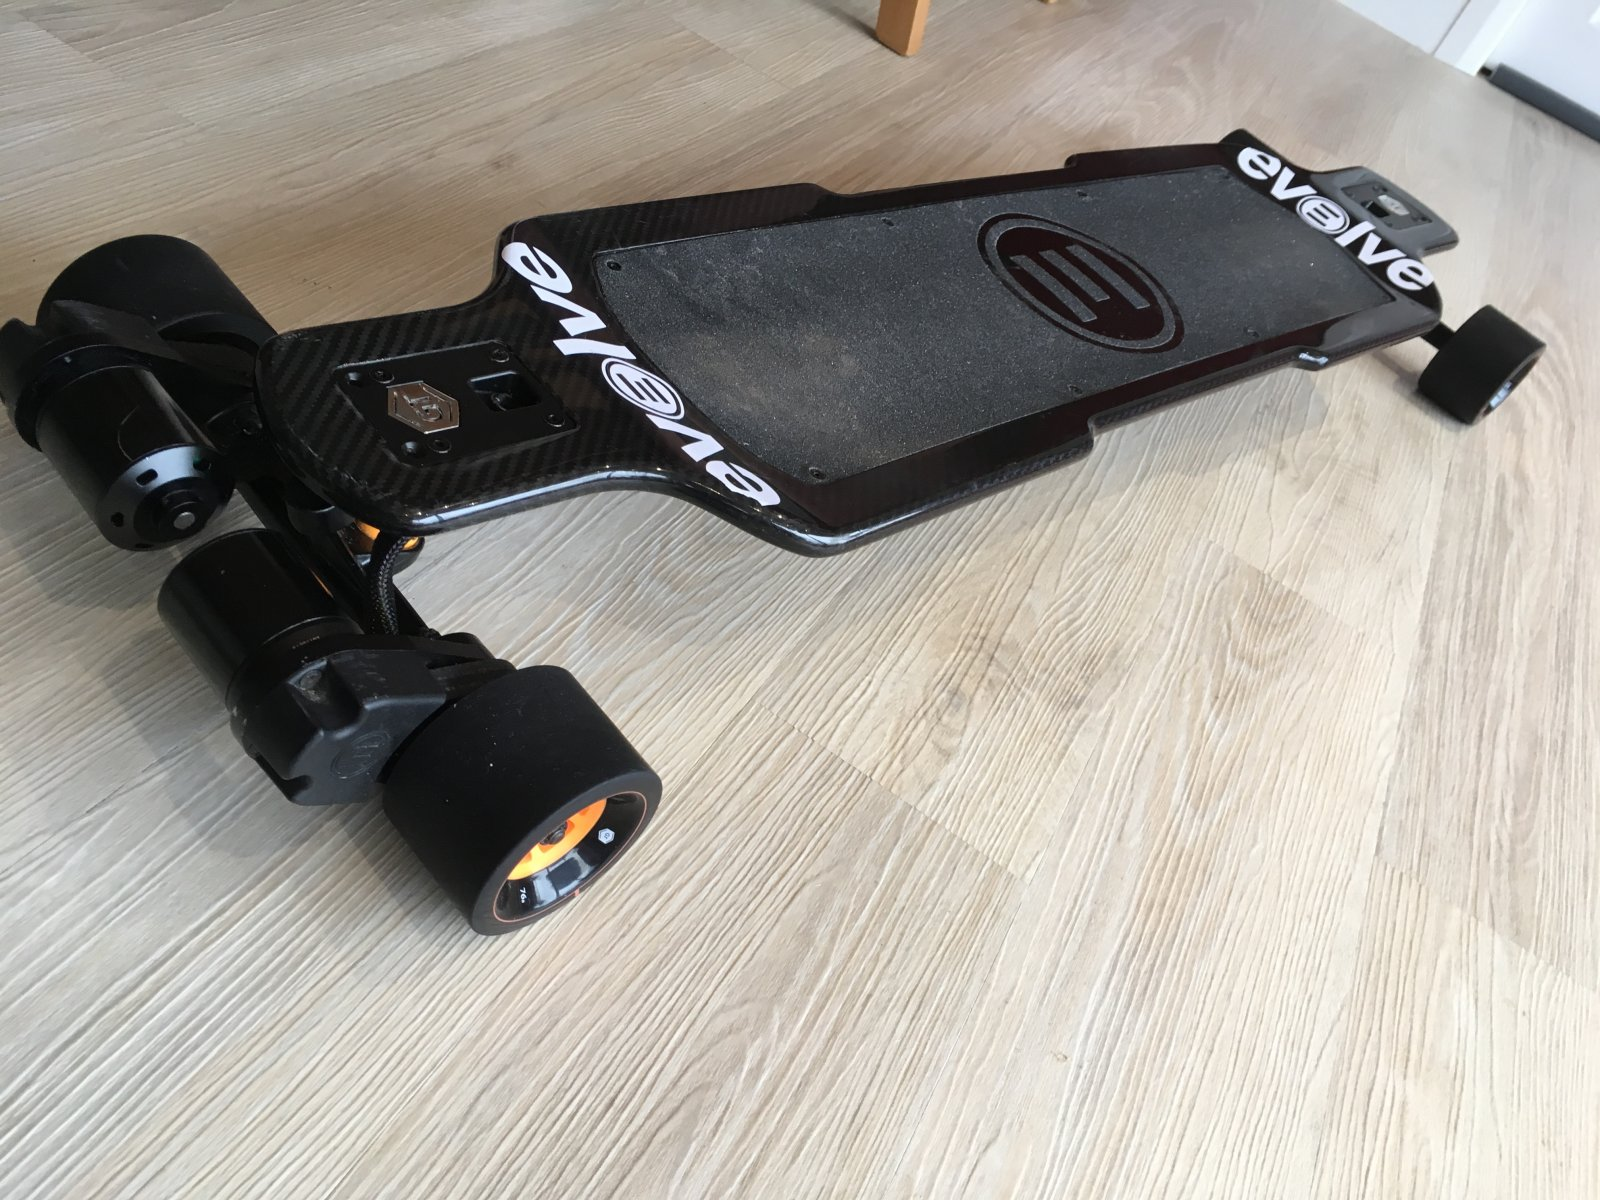 For Sale Gt Carbon Series 2in1 Electric Skateboard